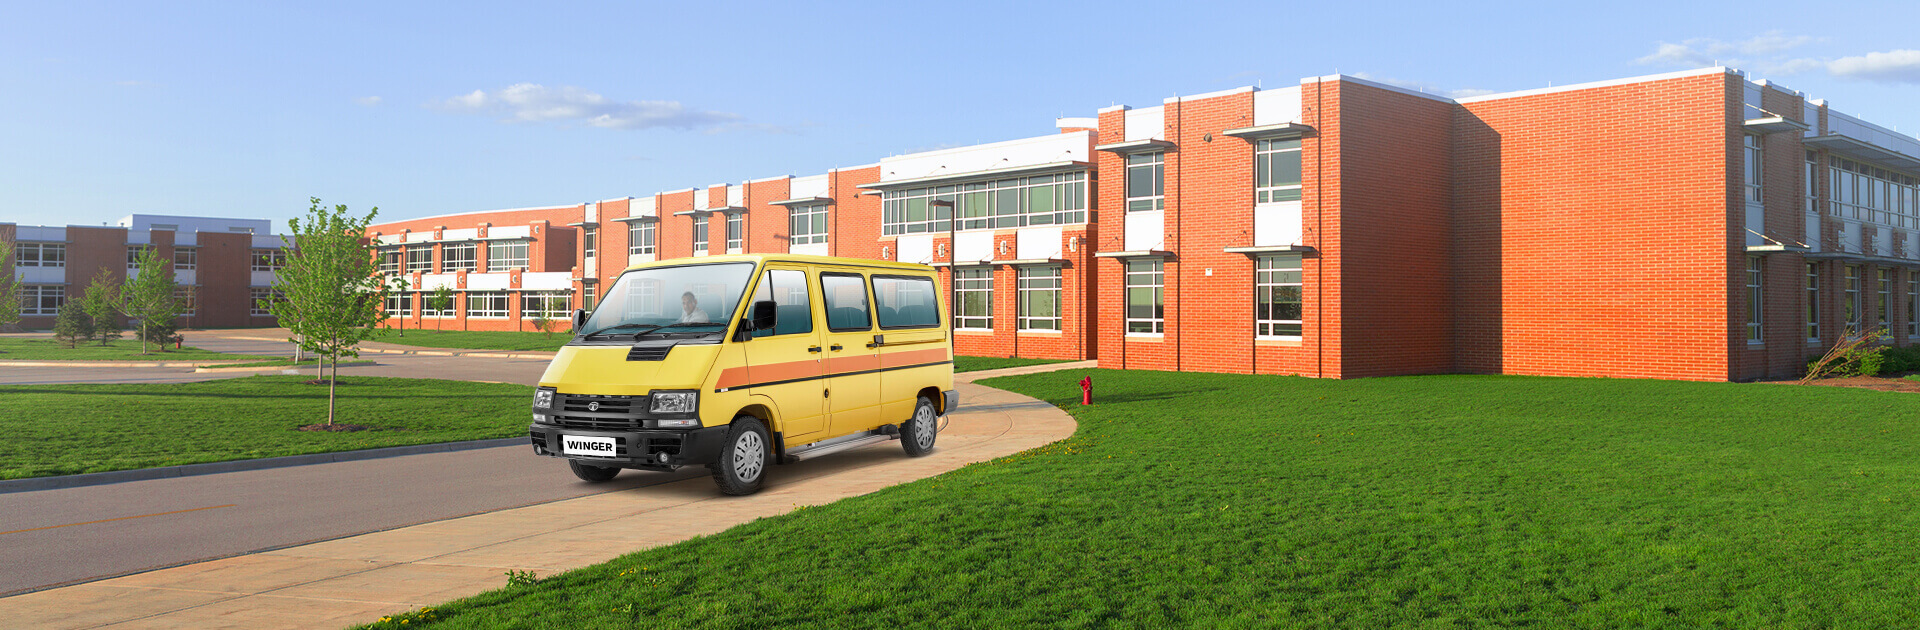 Tata Winger School